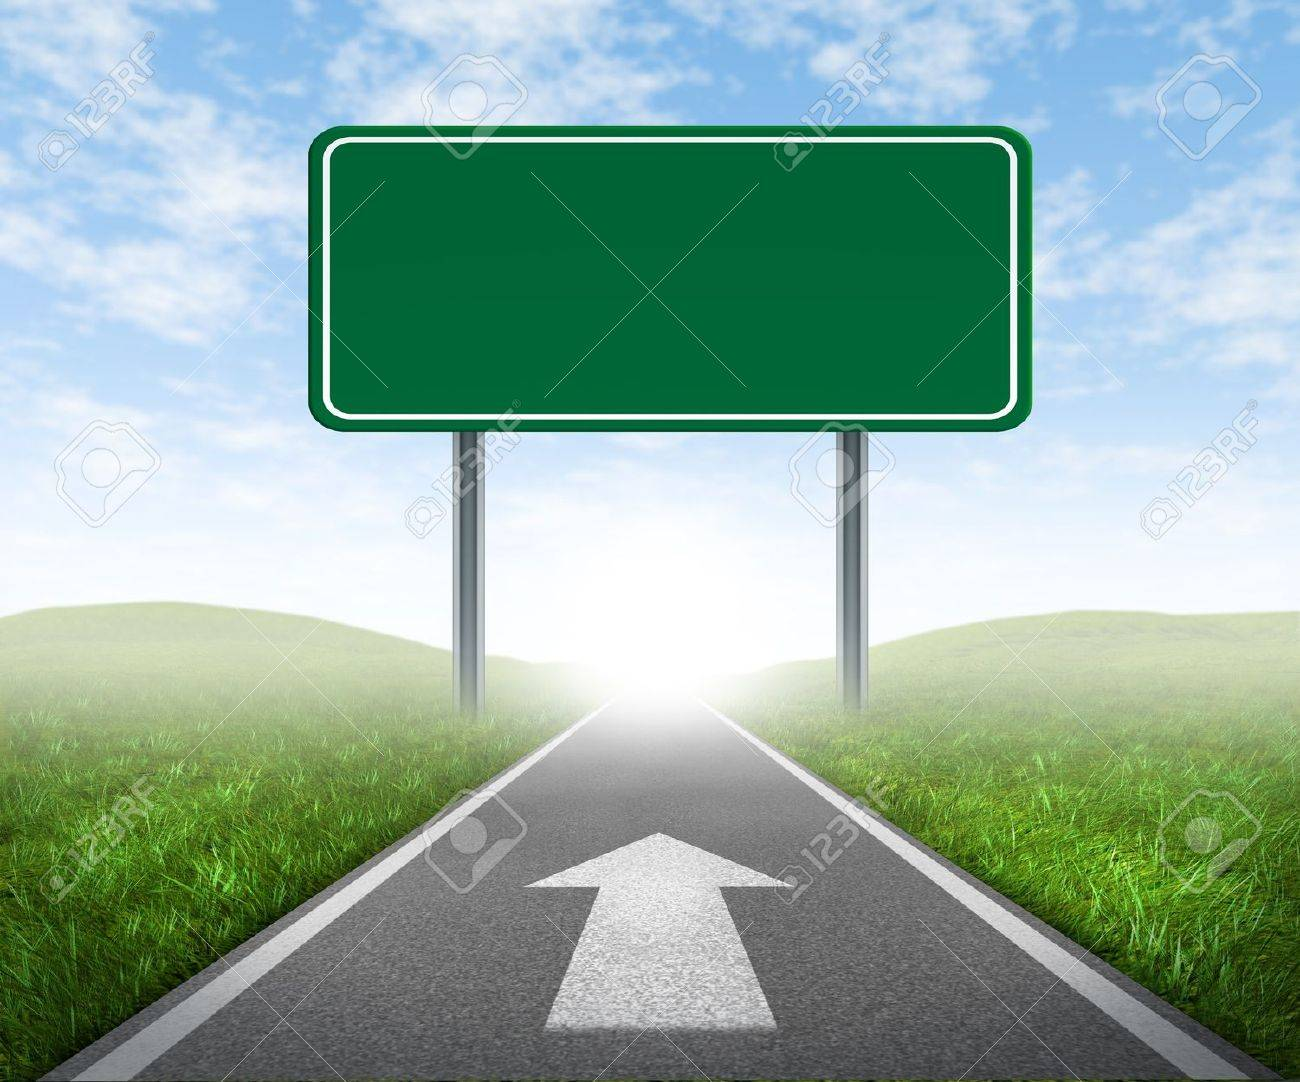 Clear goals on an open straight road highway sign with green grass and asphalt street representing the concept of journey to a focused destination resulting in success and happiness with an arrow on the pavement. Stock Photo - 11221507